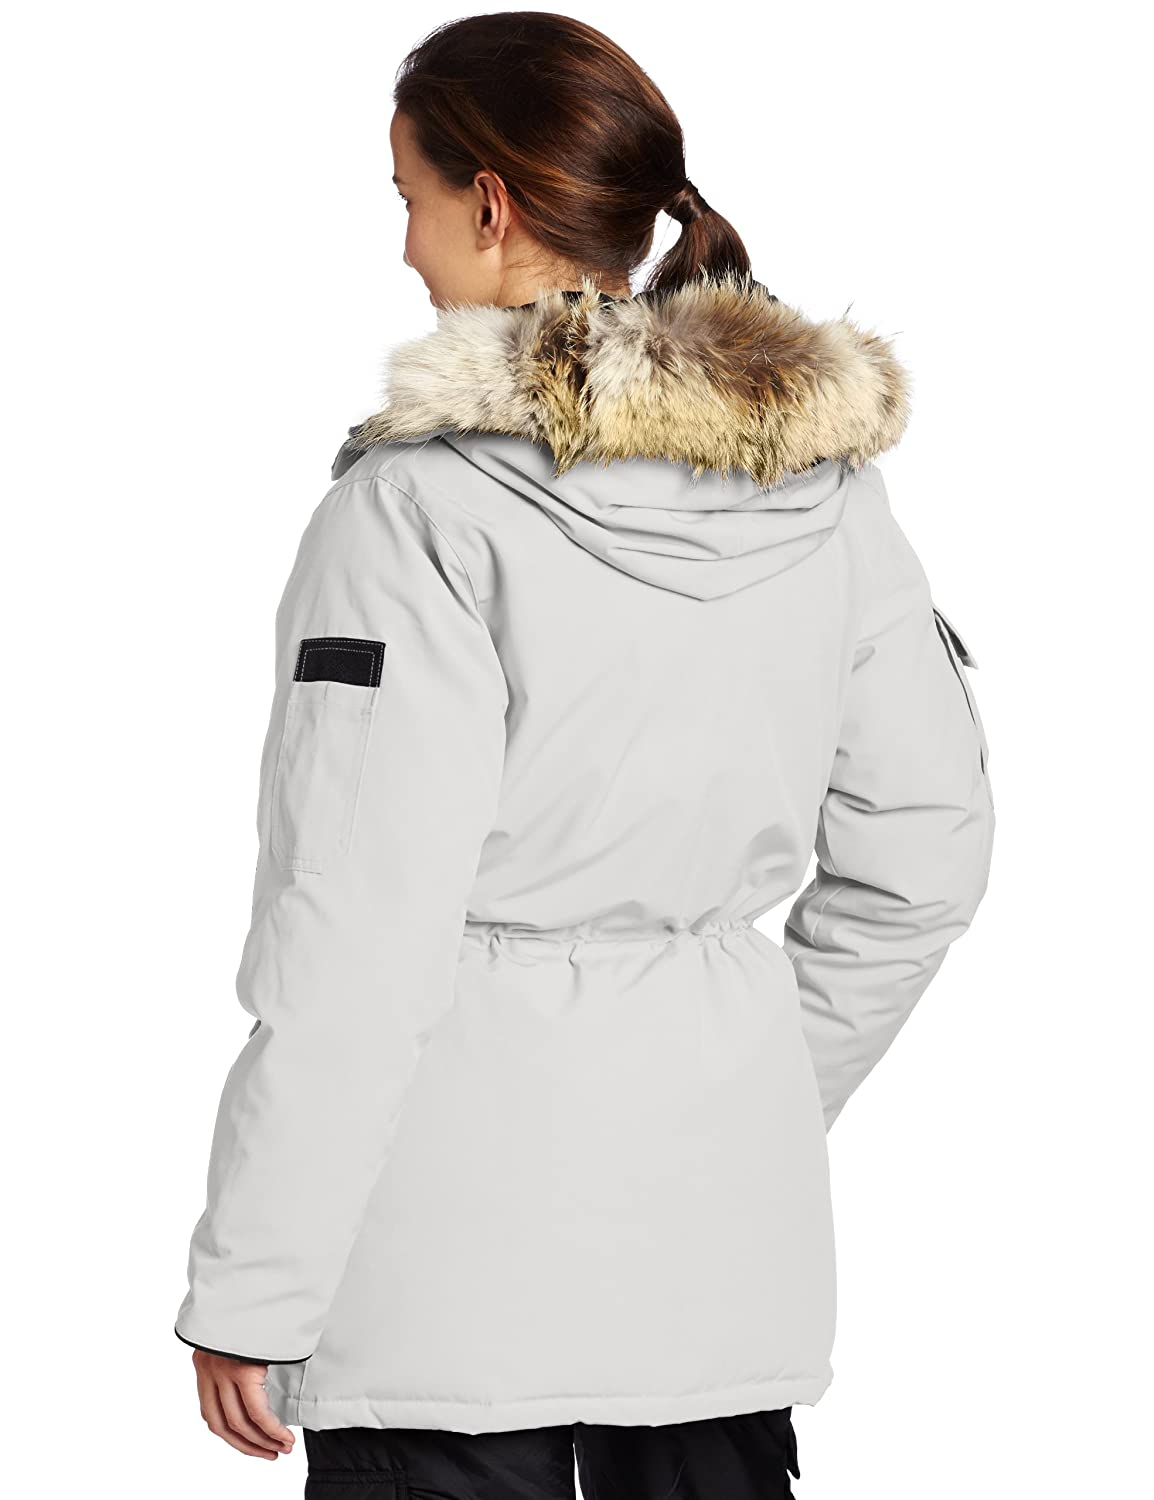 Canada Goose expedition parka sale store - Canada Goose Women's Expedition Parka